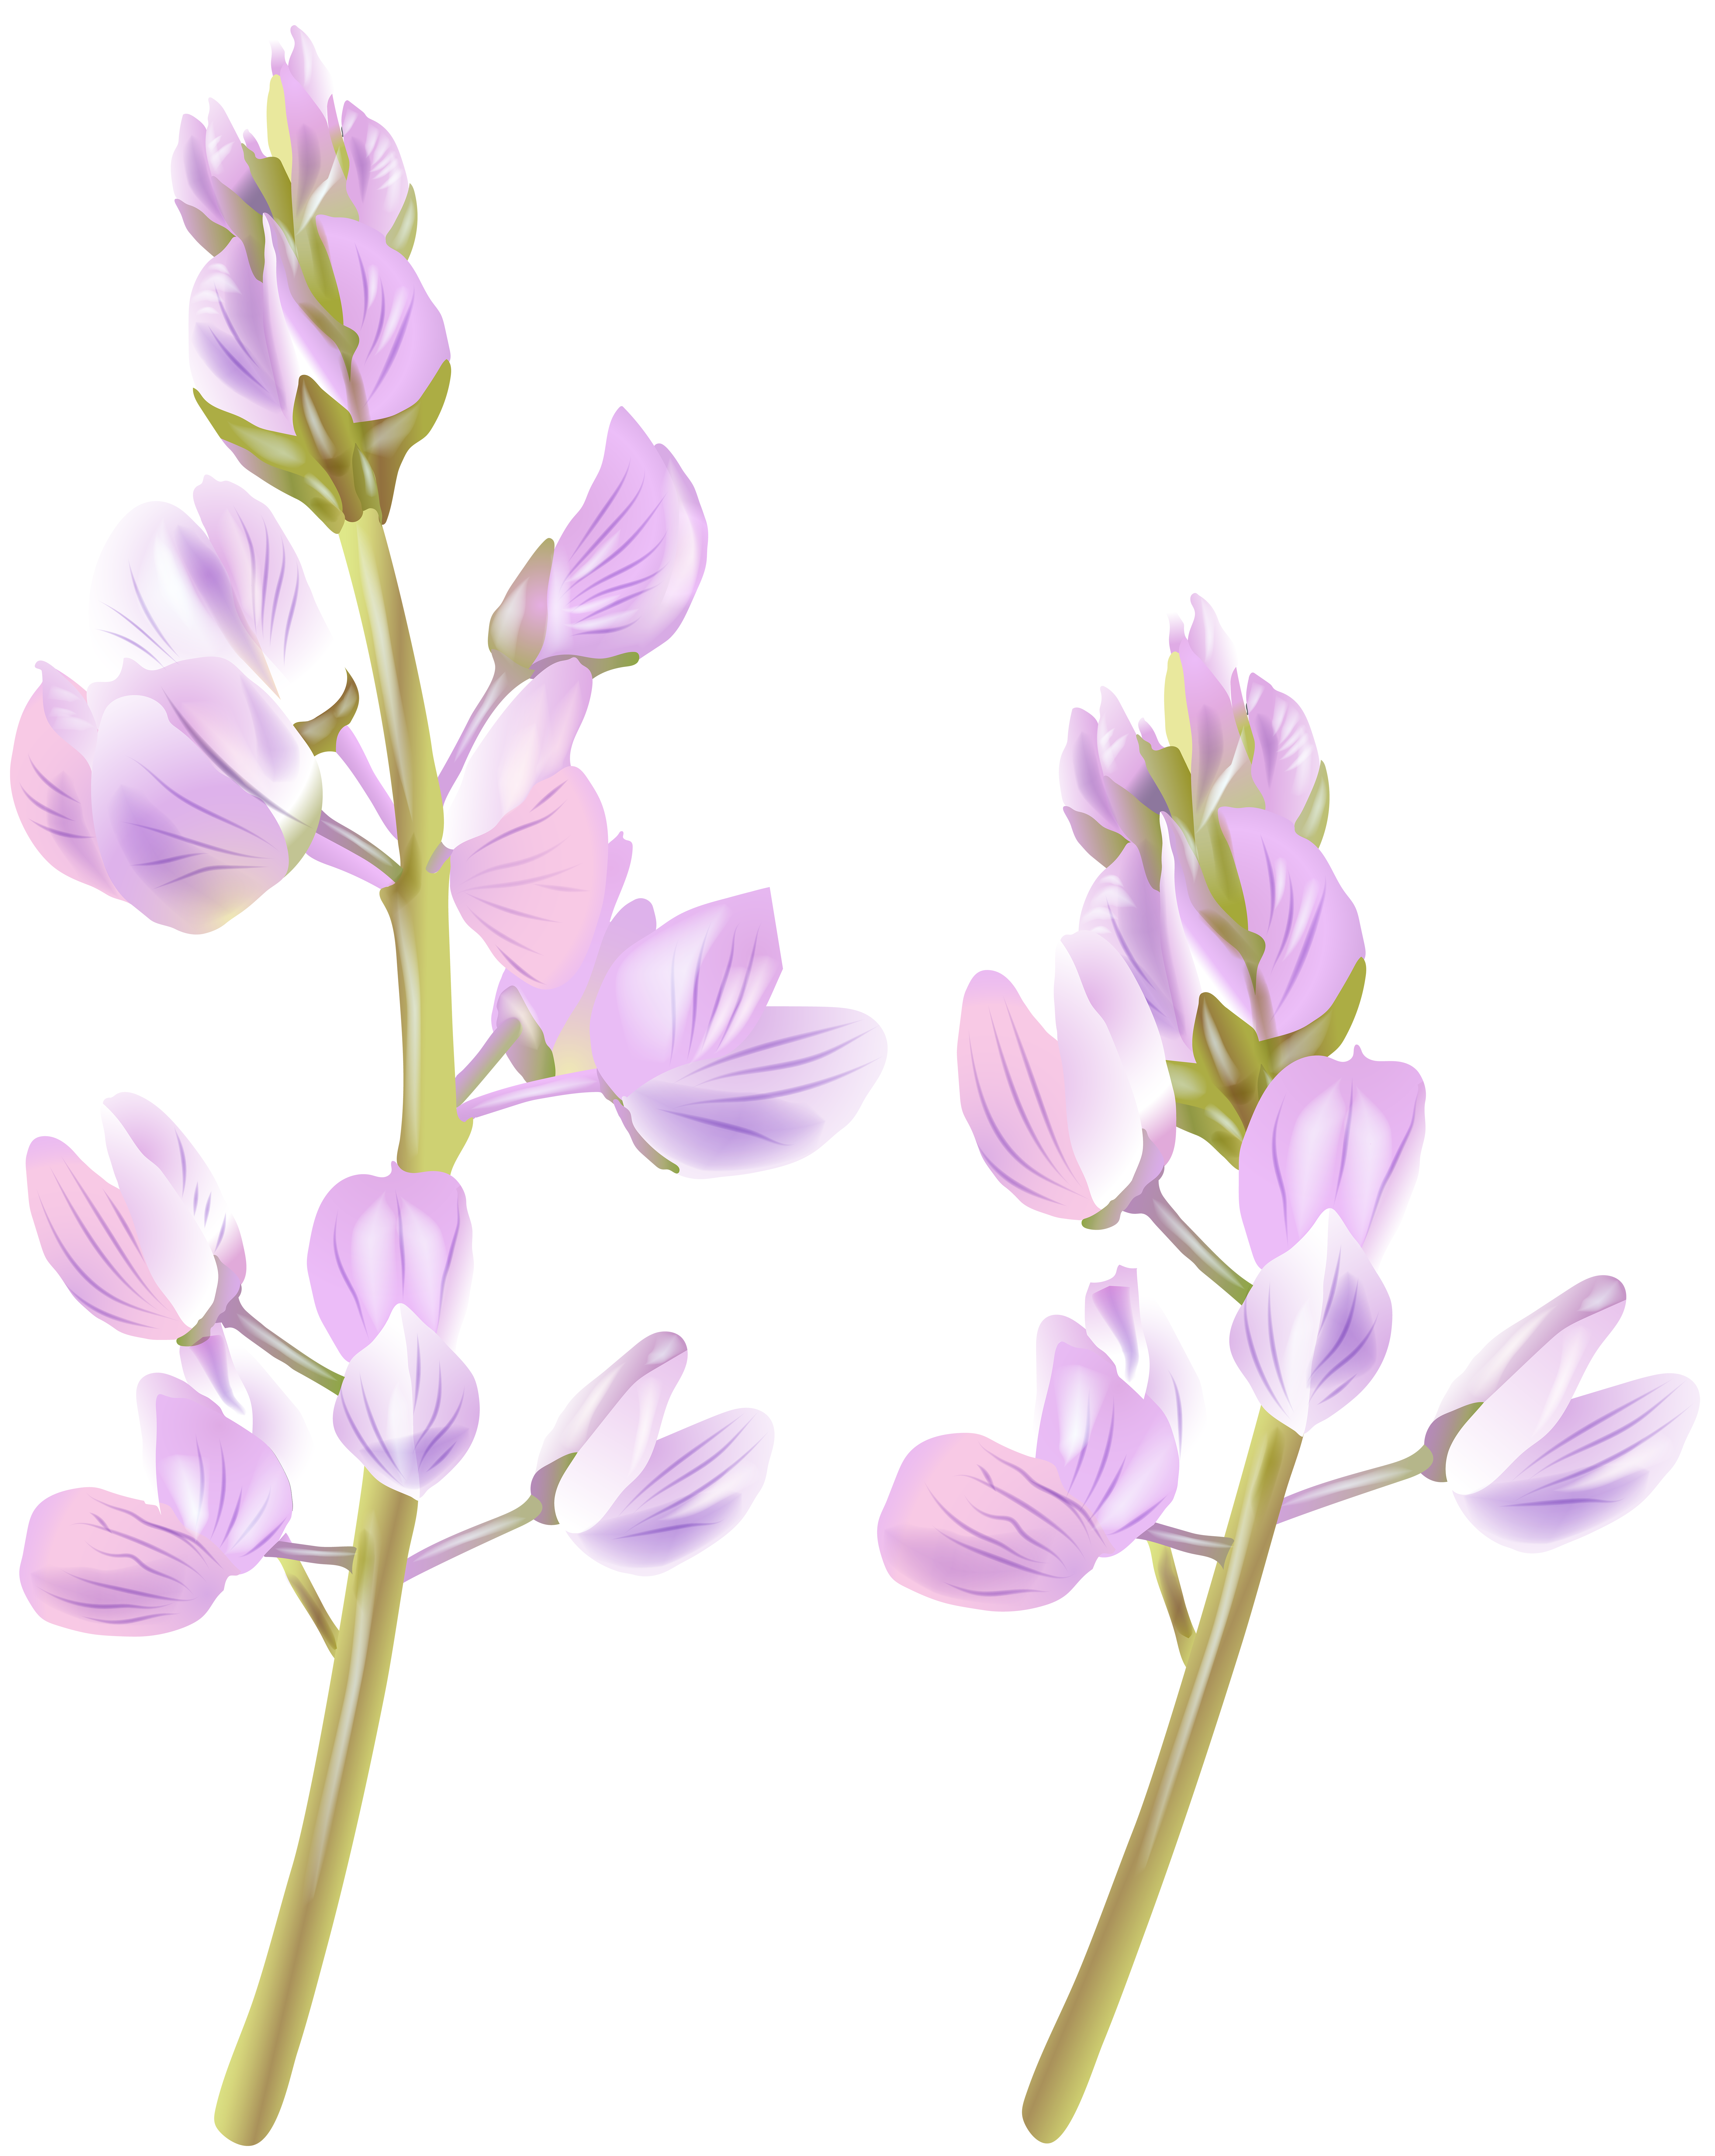 Wildflower PNG Clip Art Image.